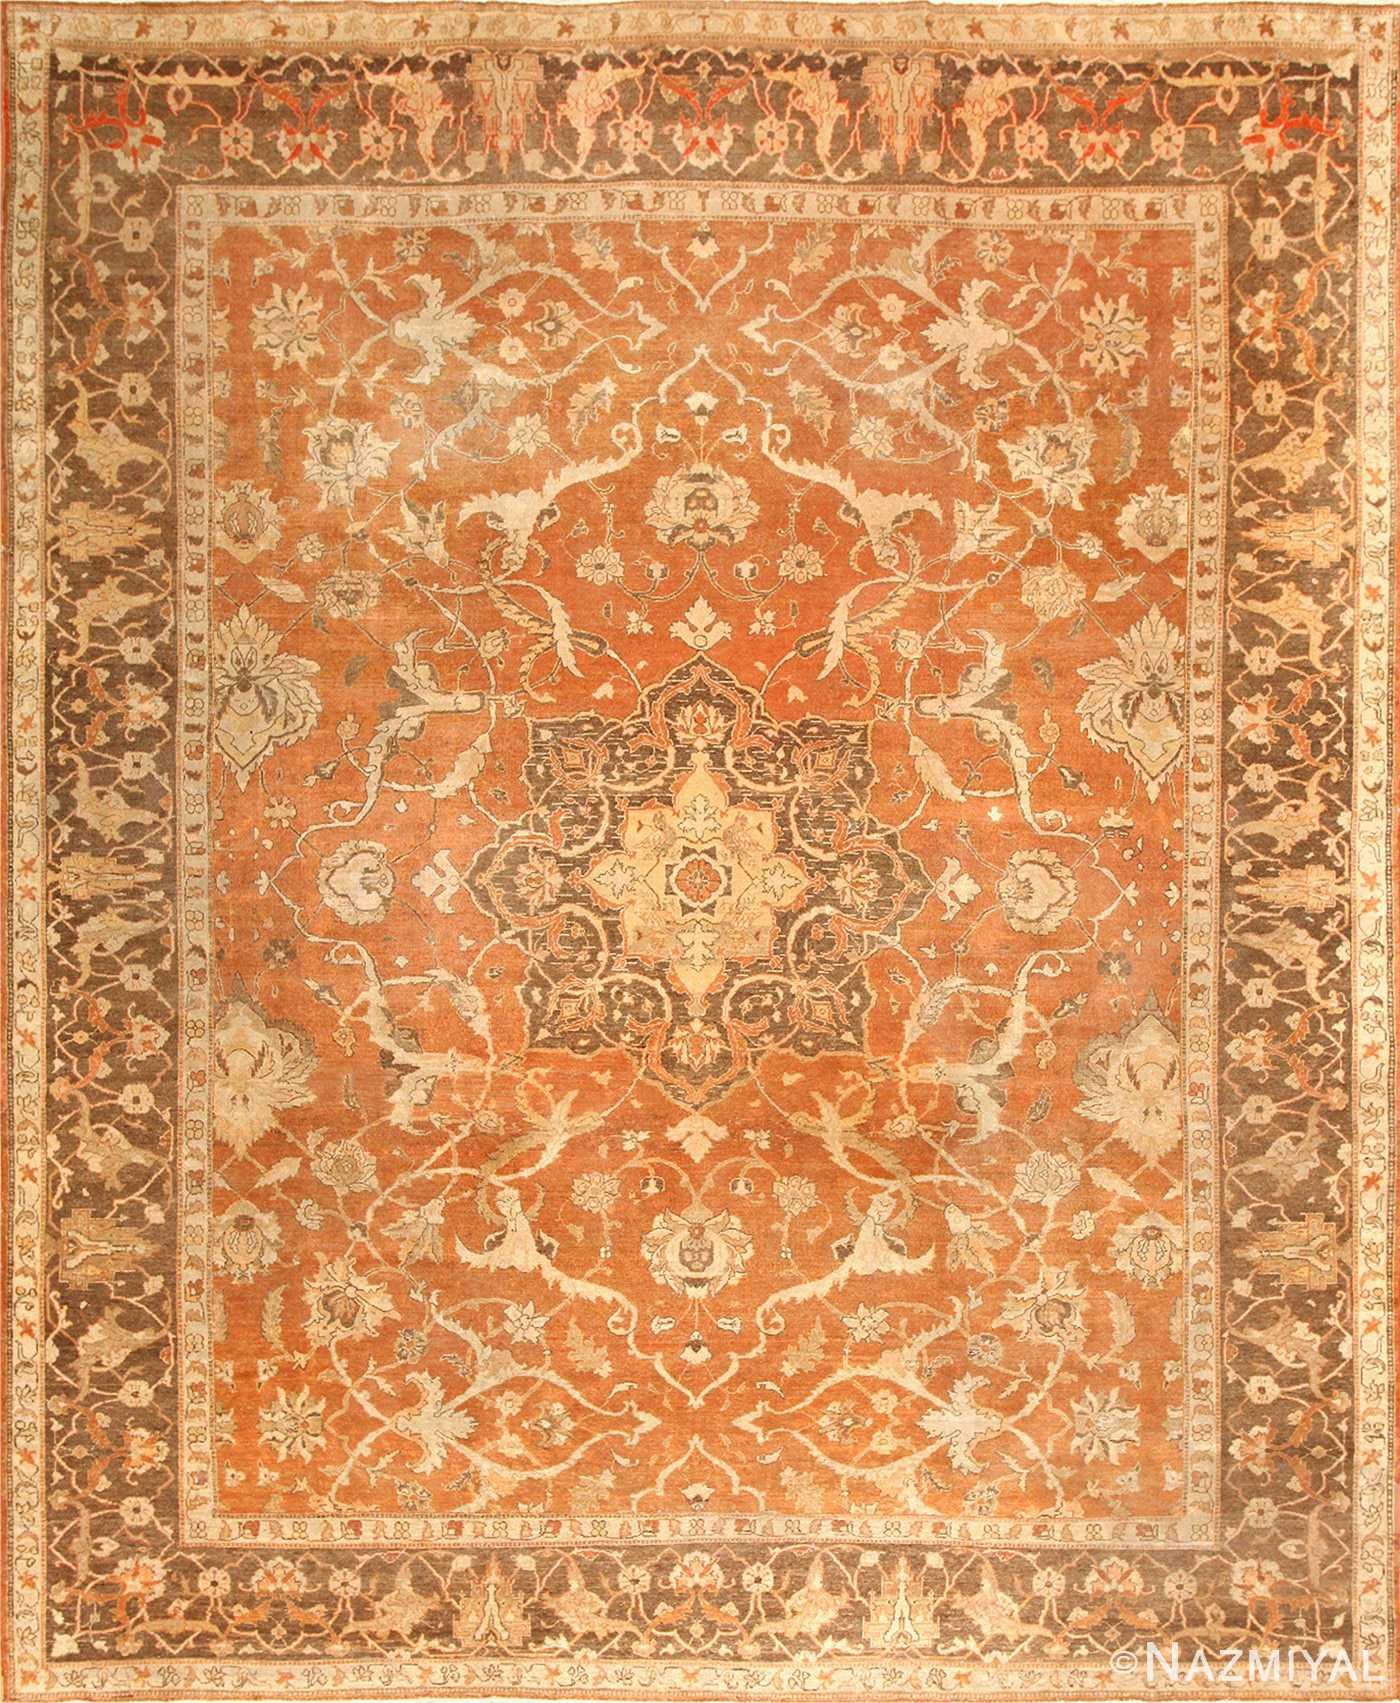 Decorative Antique Indian Amritsar Rug 50438 Nazmiyal